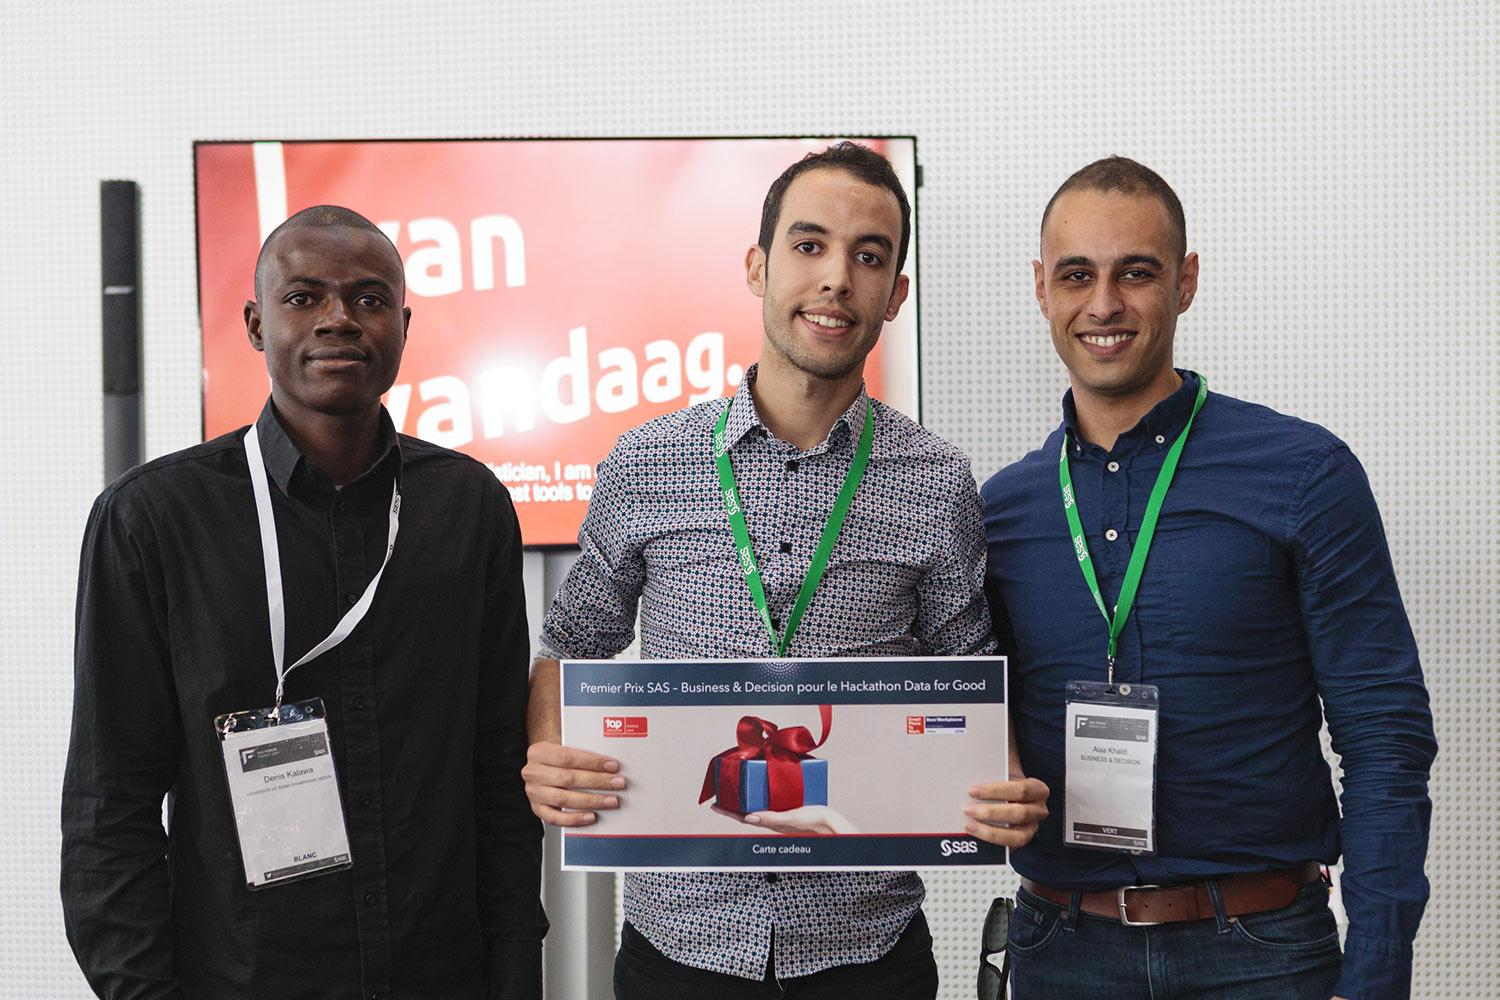 Group photo of three male winners from SAS Hackathon event - 1st Place